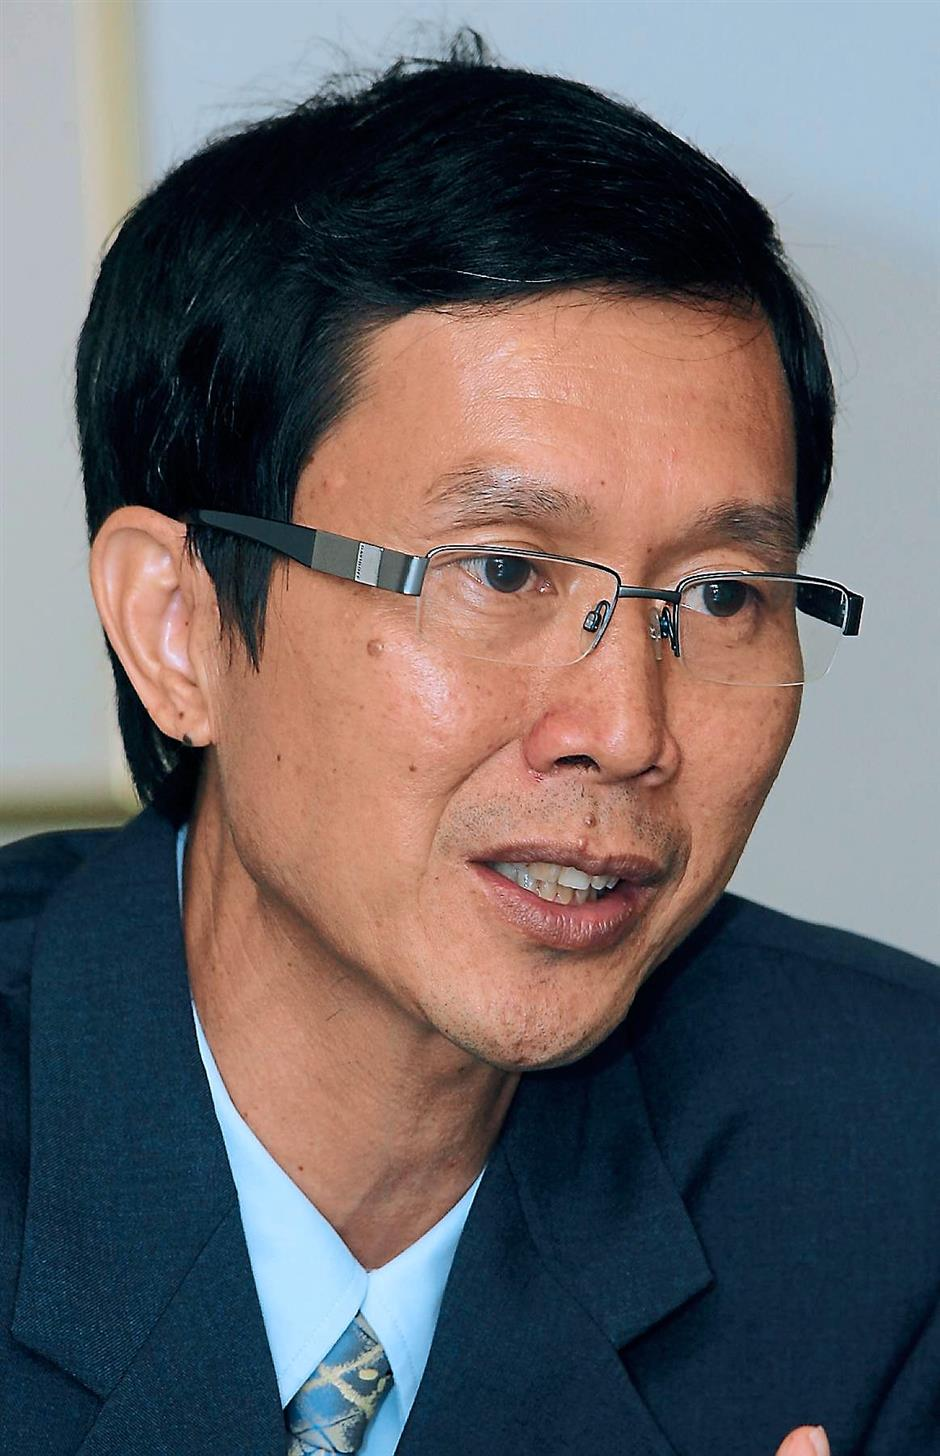 Careplus Group Bhd executive director/group chief executive officer Lim Kwee Shyan